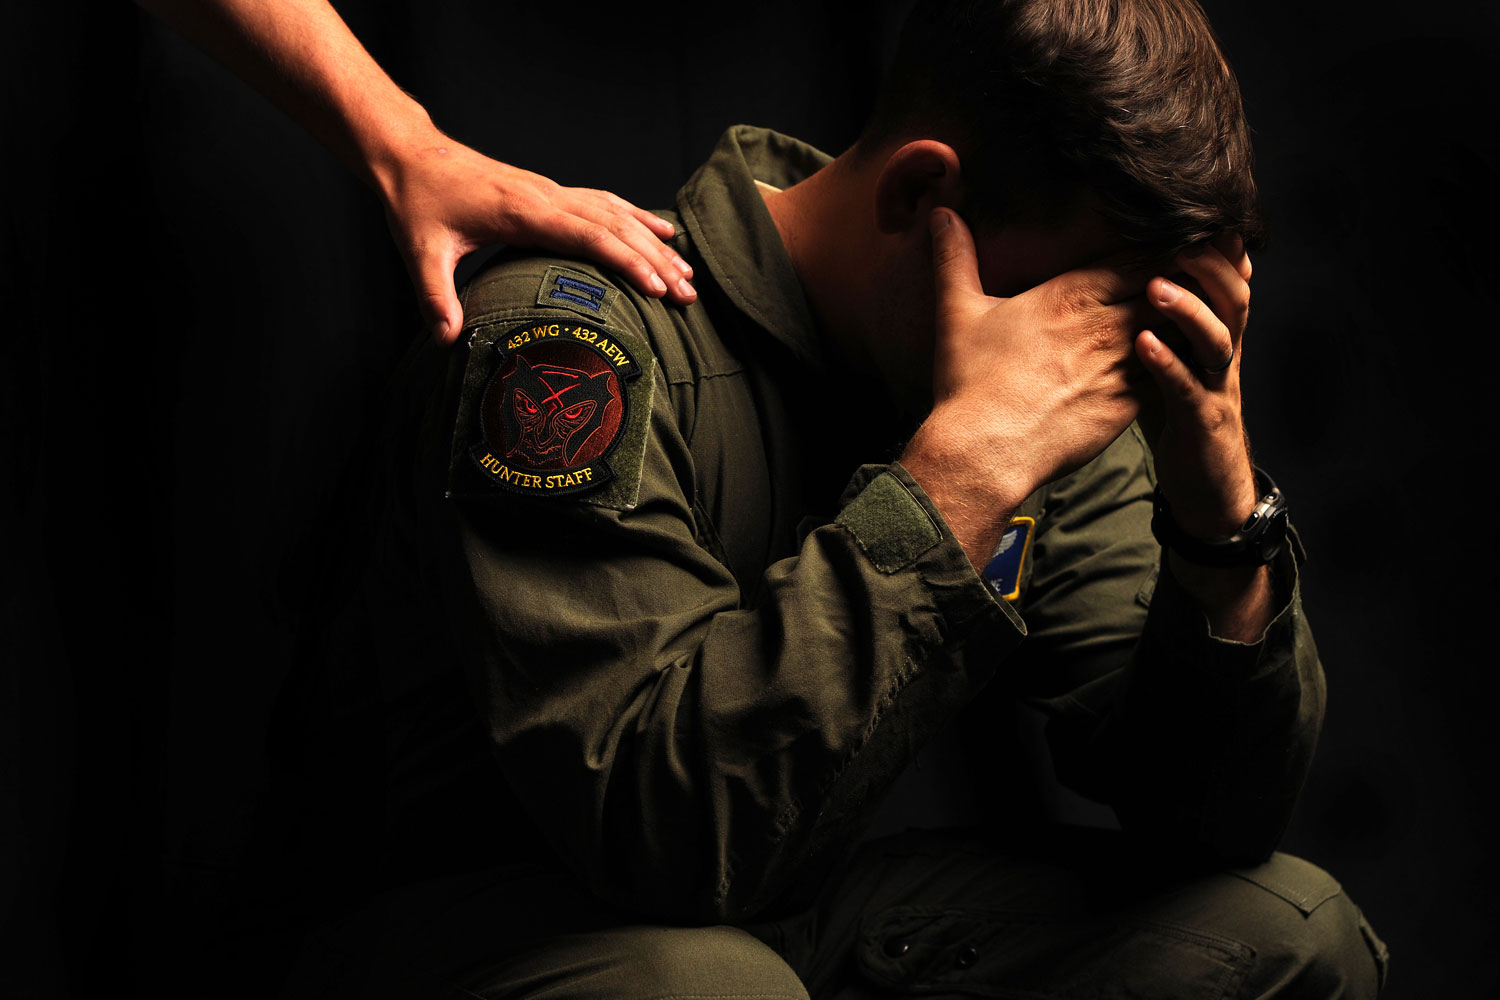 Ptsd Veterans pictures catalog photo